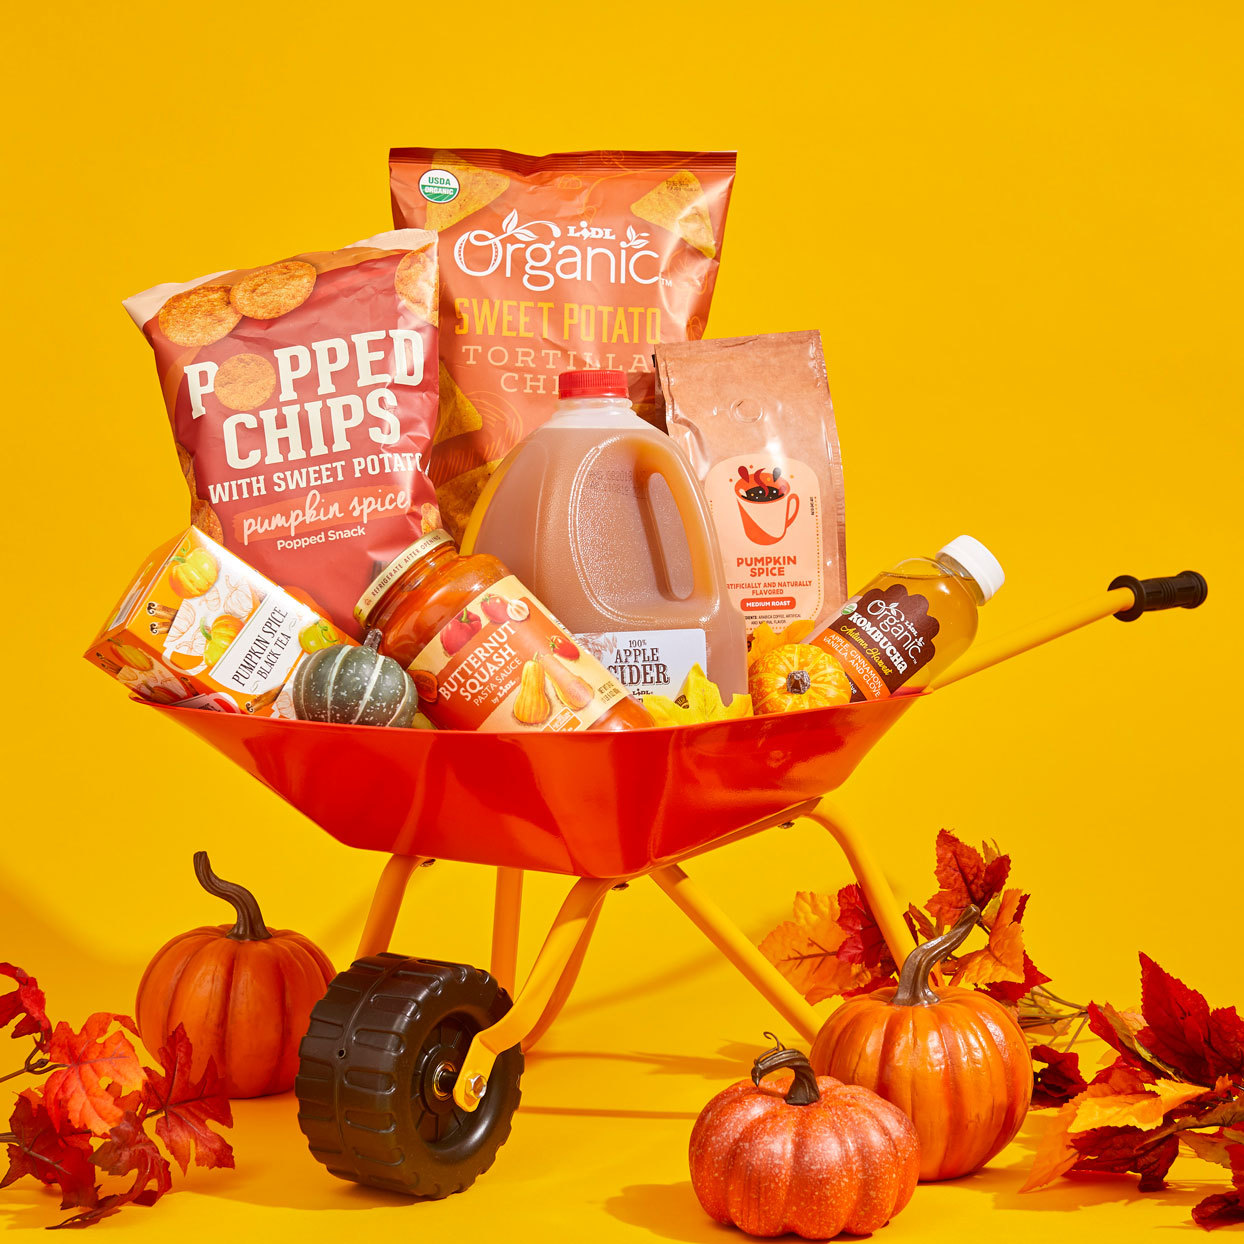 10 New Fall Products Coming to Lidl This Month